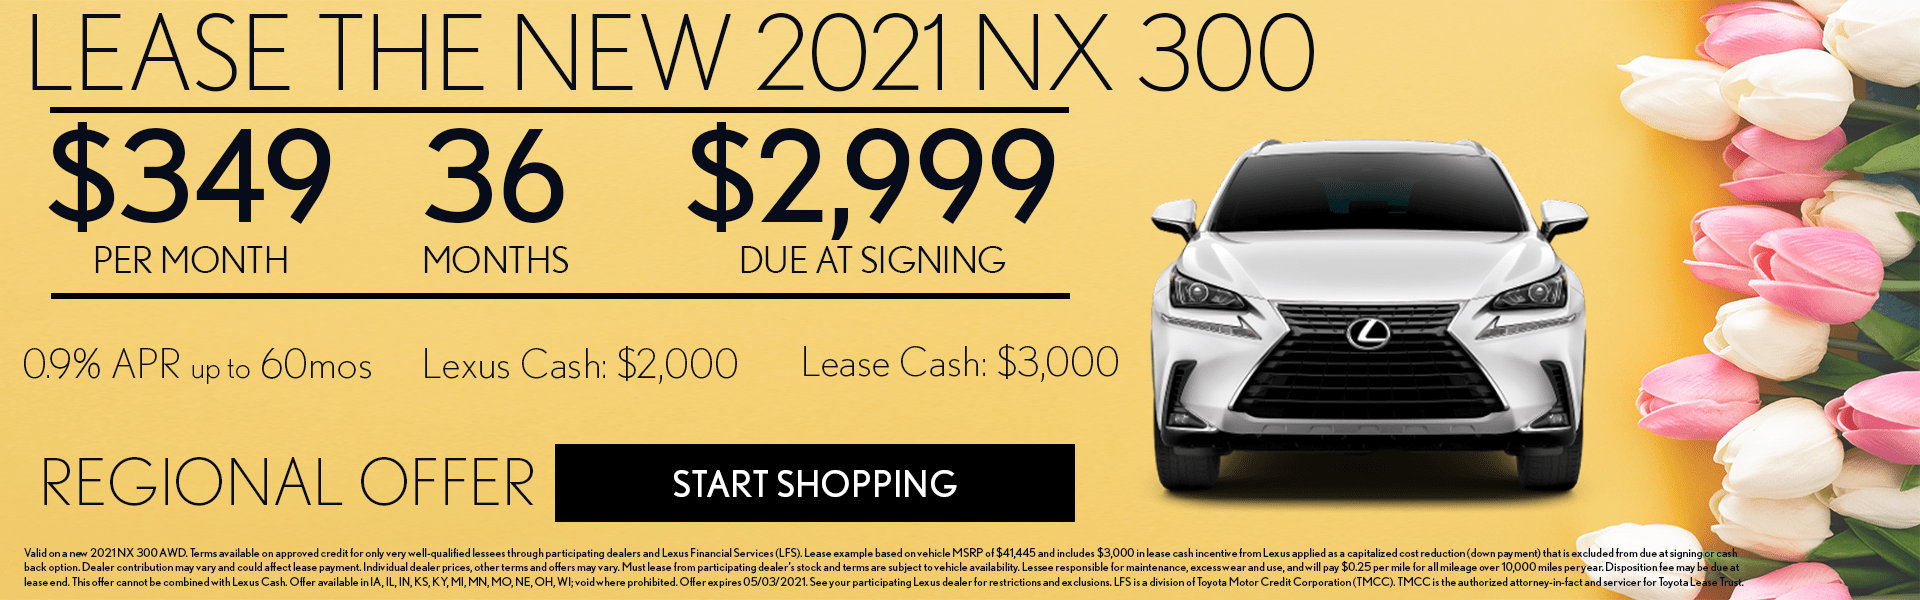 2021 Lexus NX offer